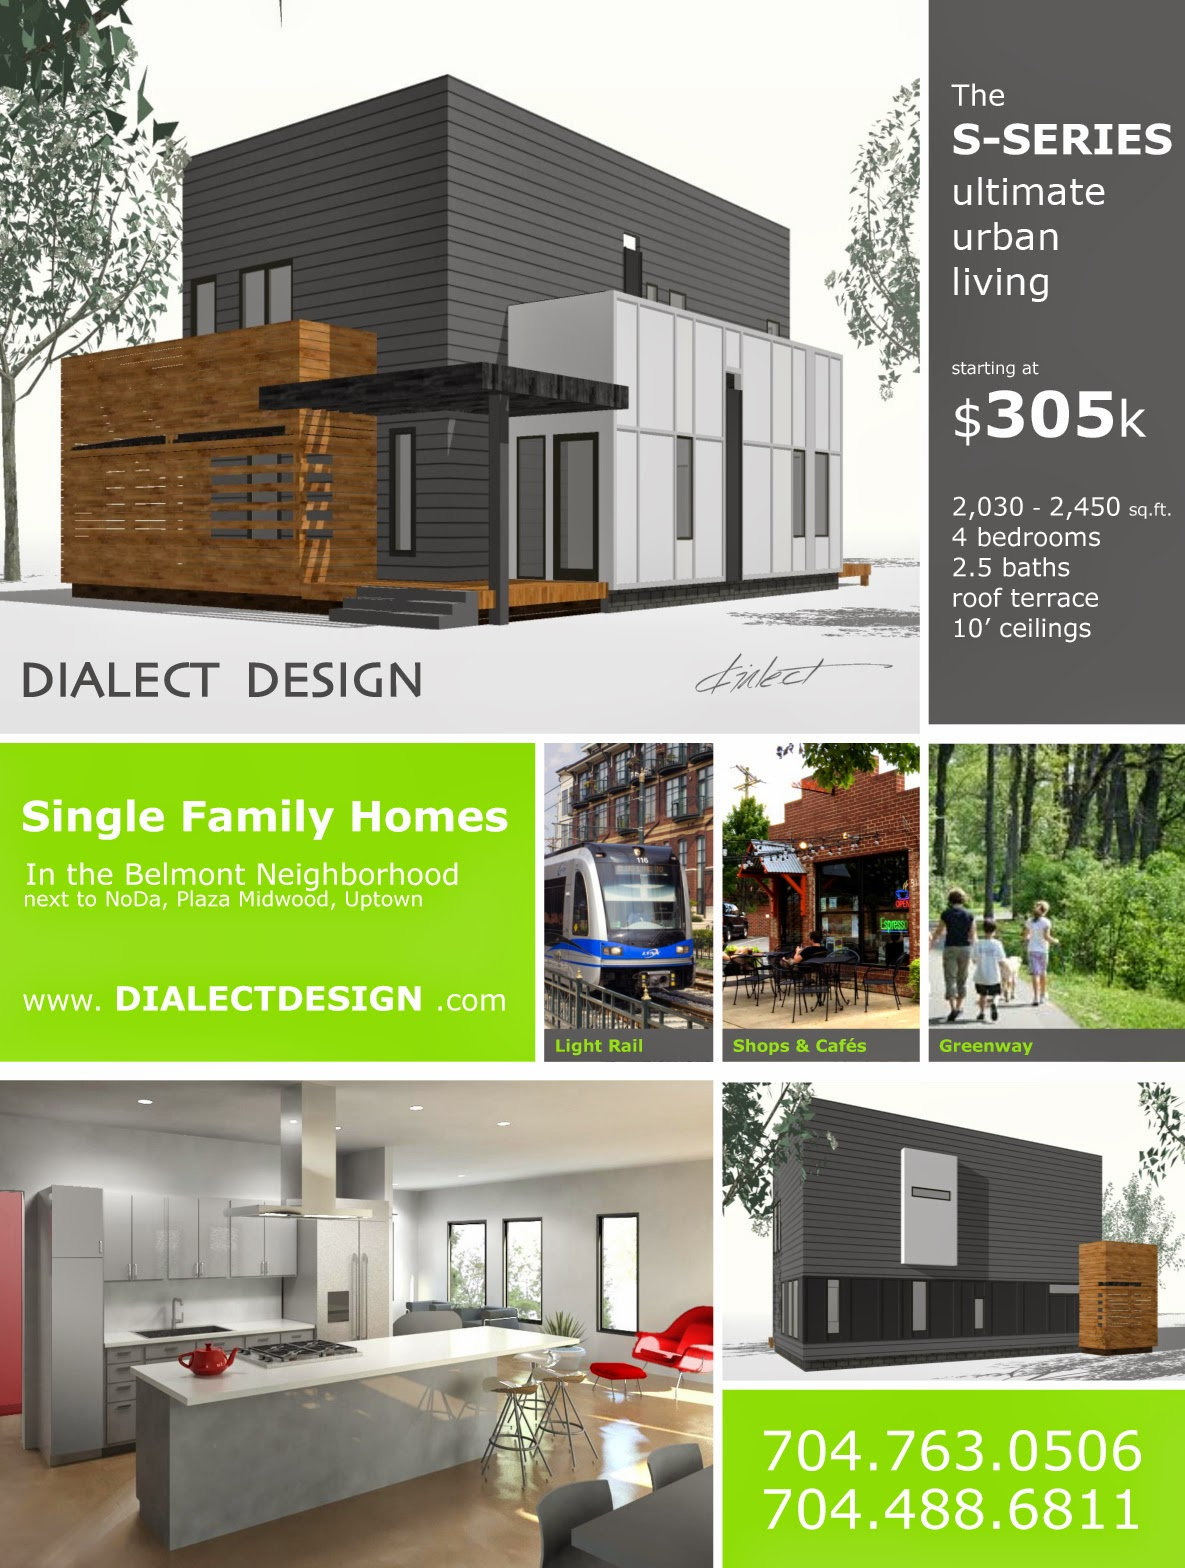 Dialect Design Modern Homes For Sale In Charlotte